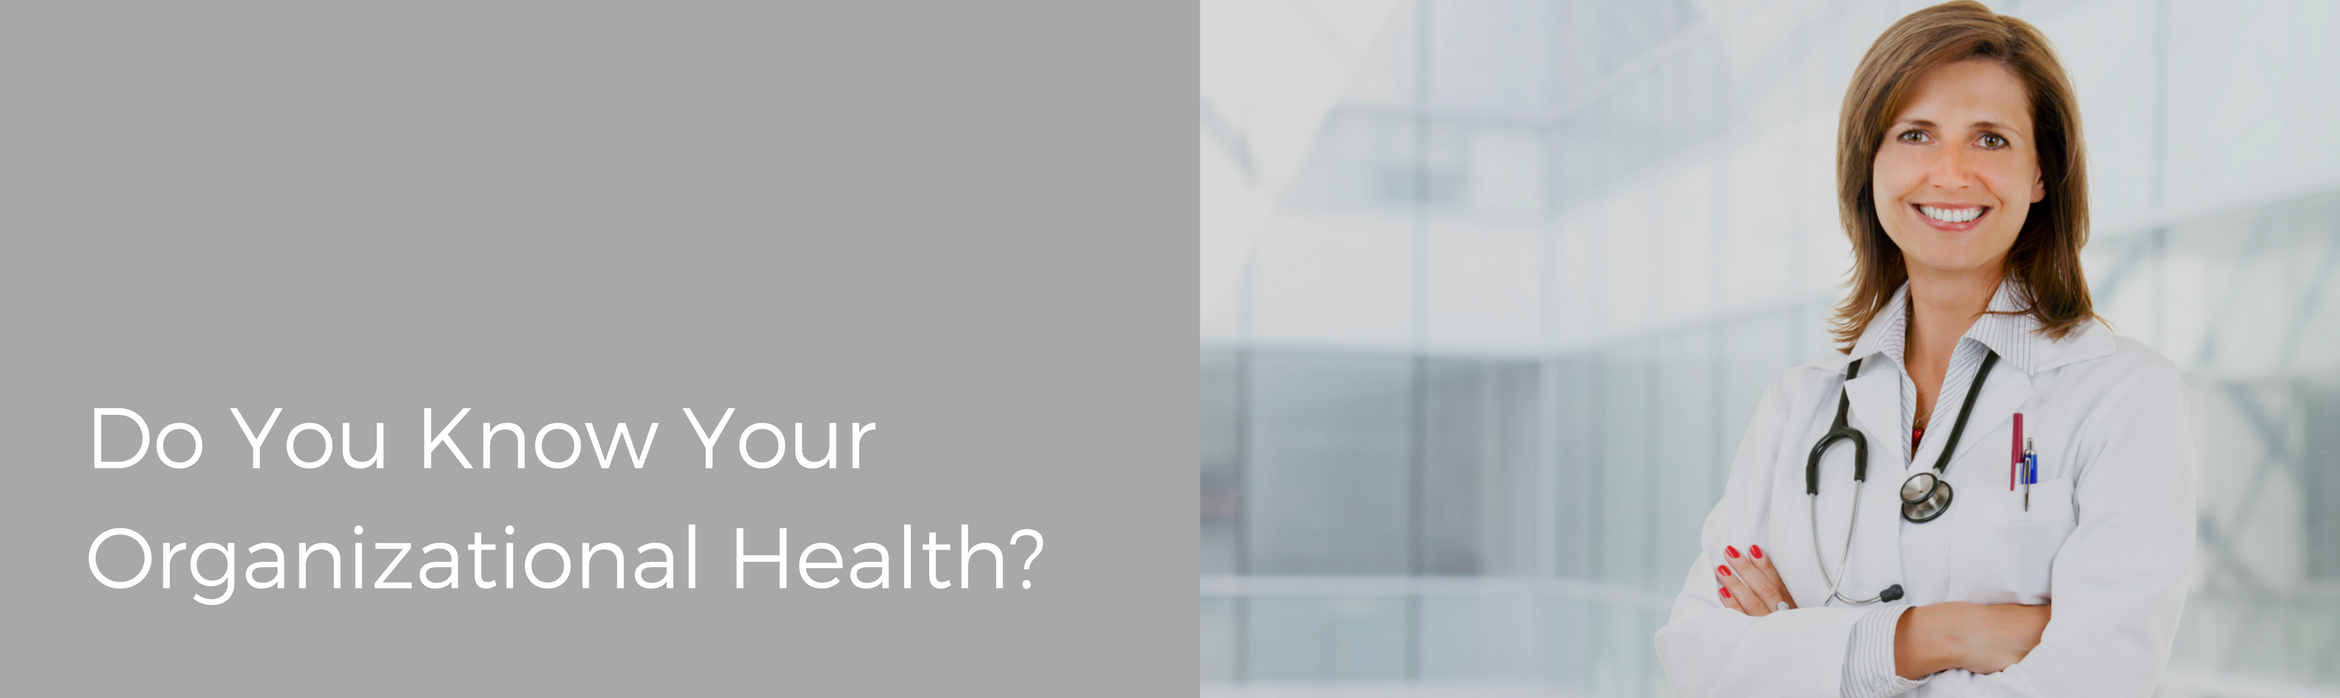 Do You Know Your Organizational Health?